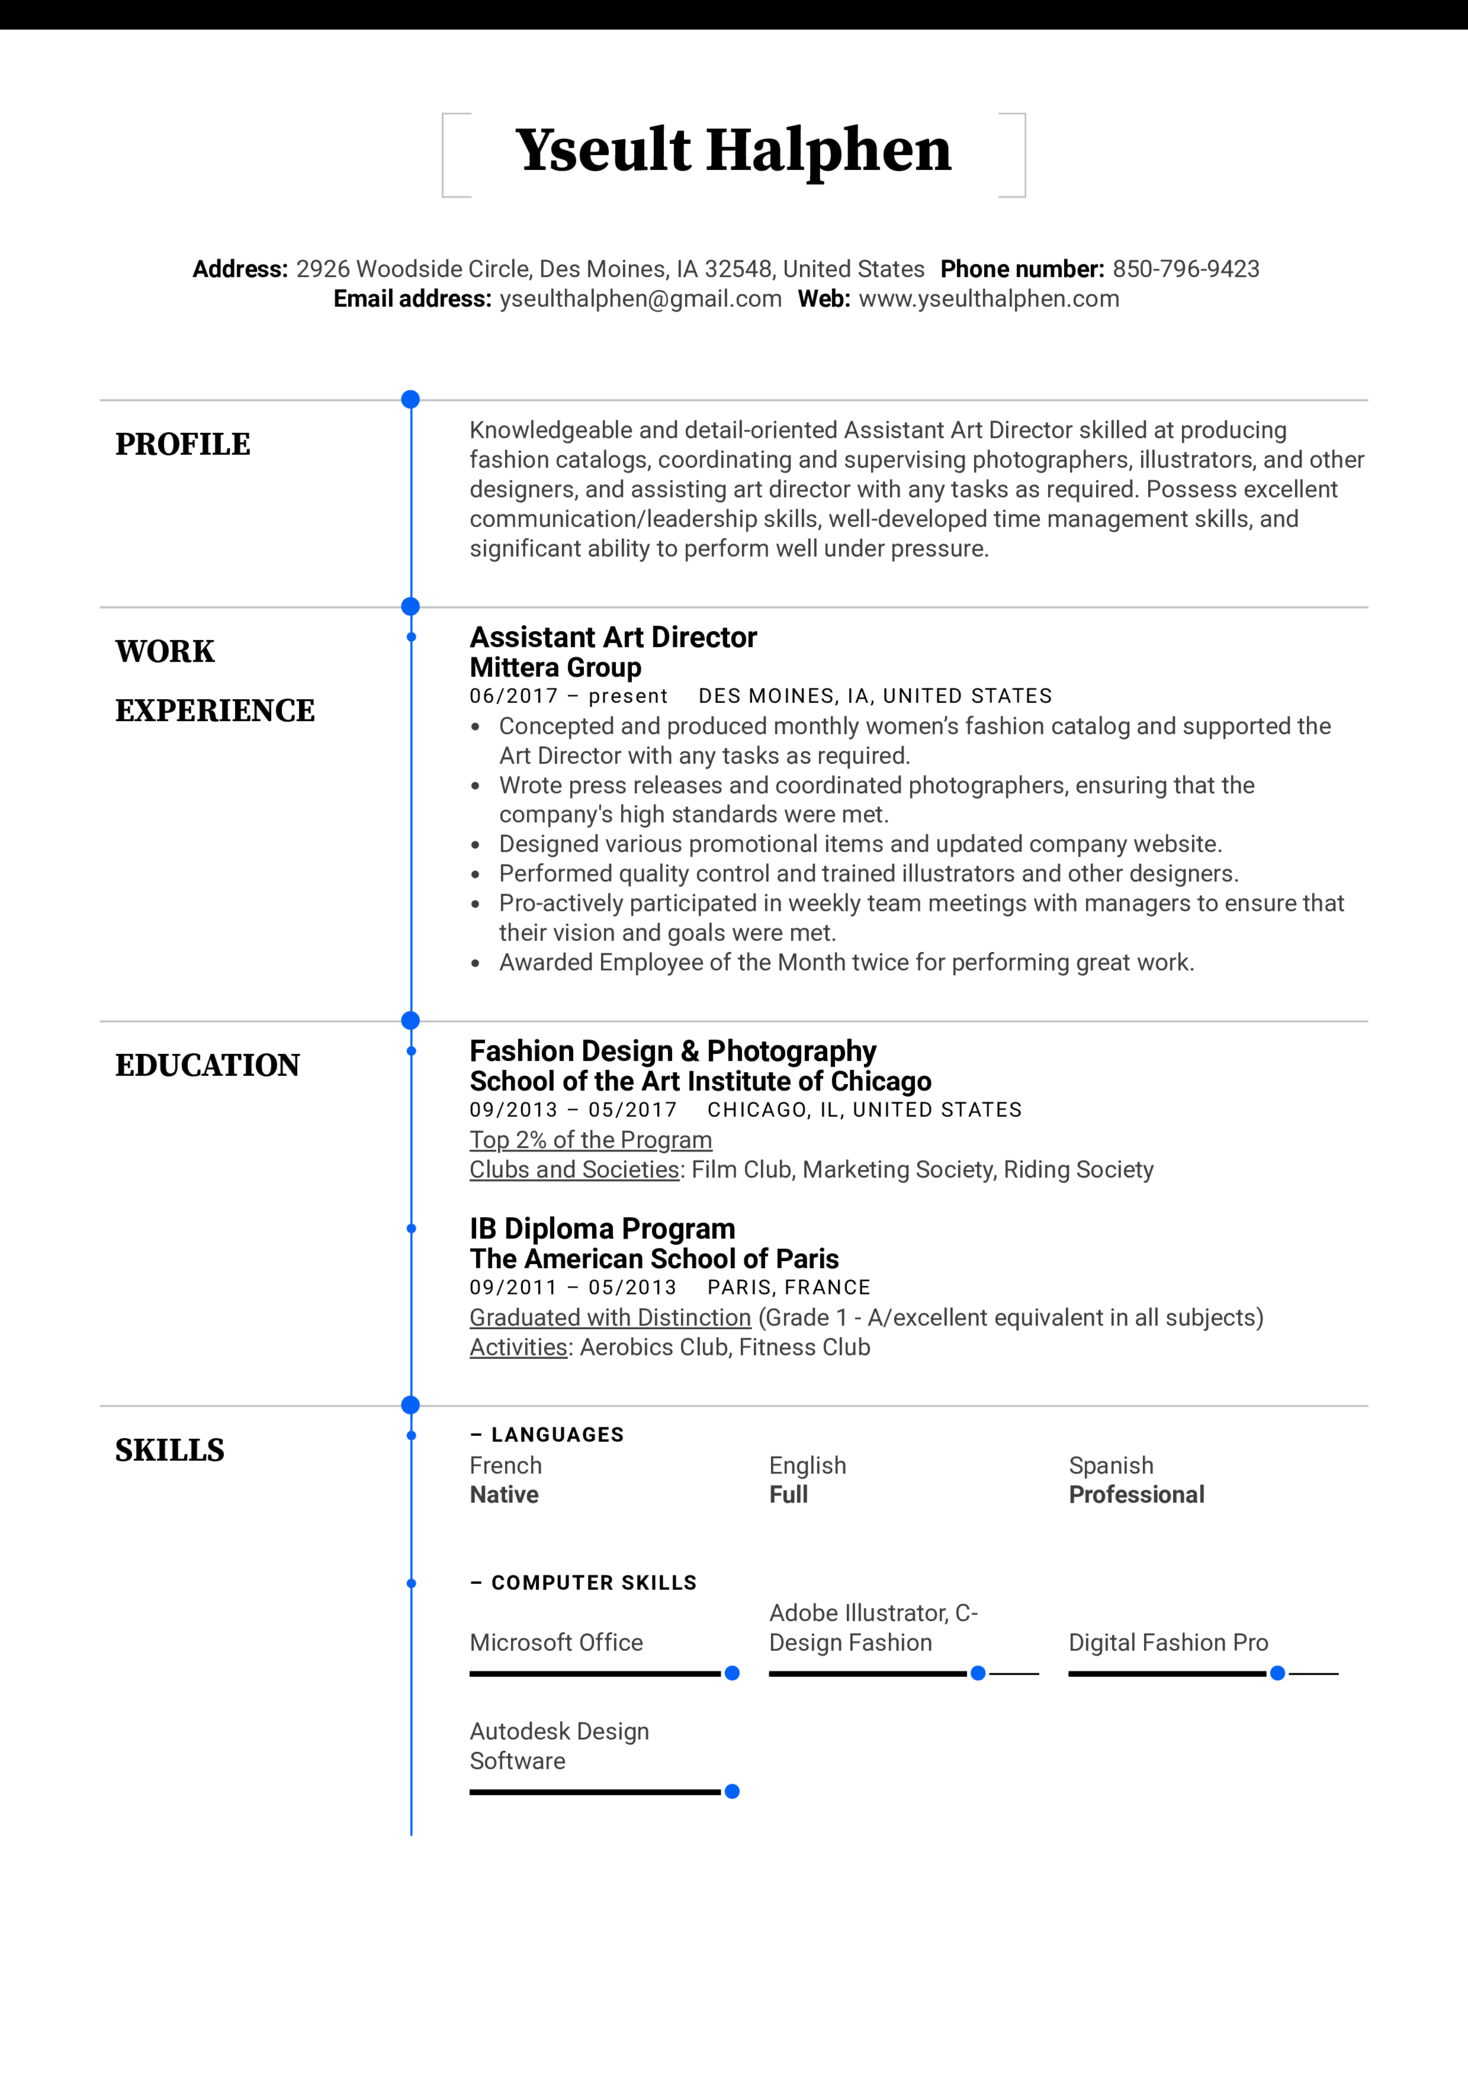 Assistant Art Director Resume Example (Part 1)